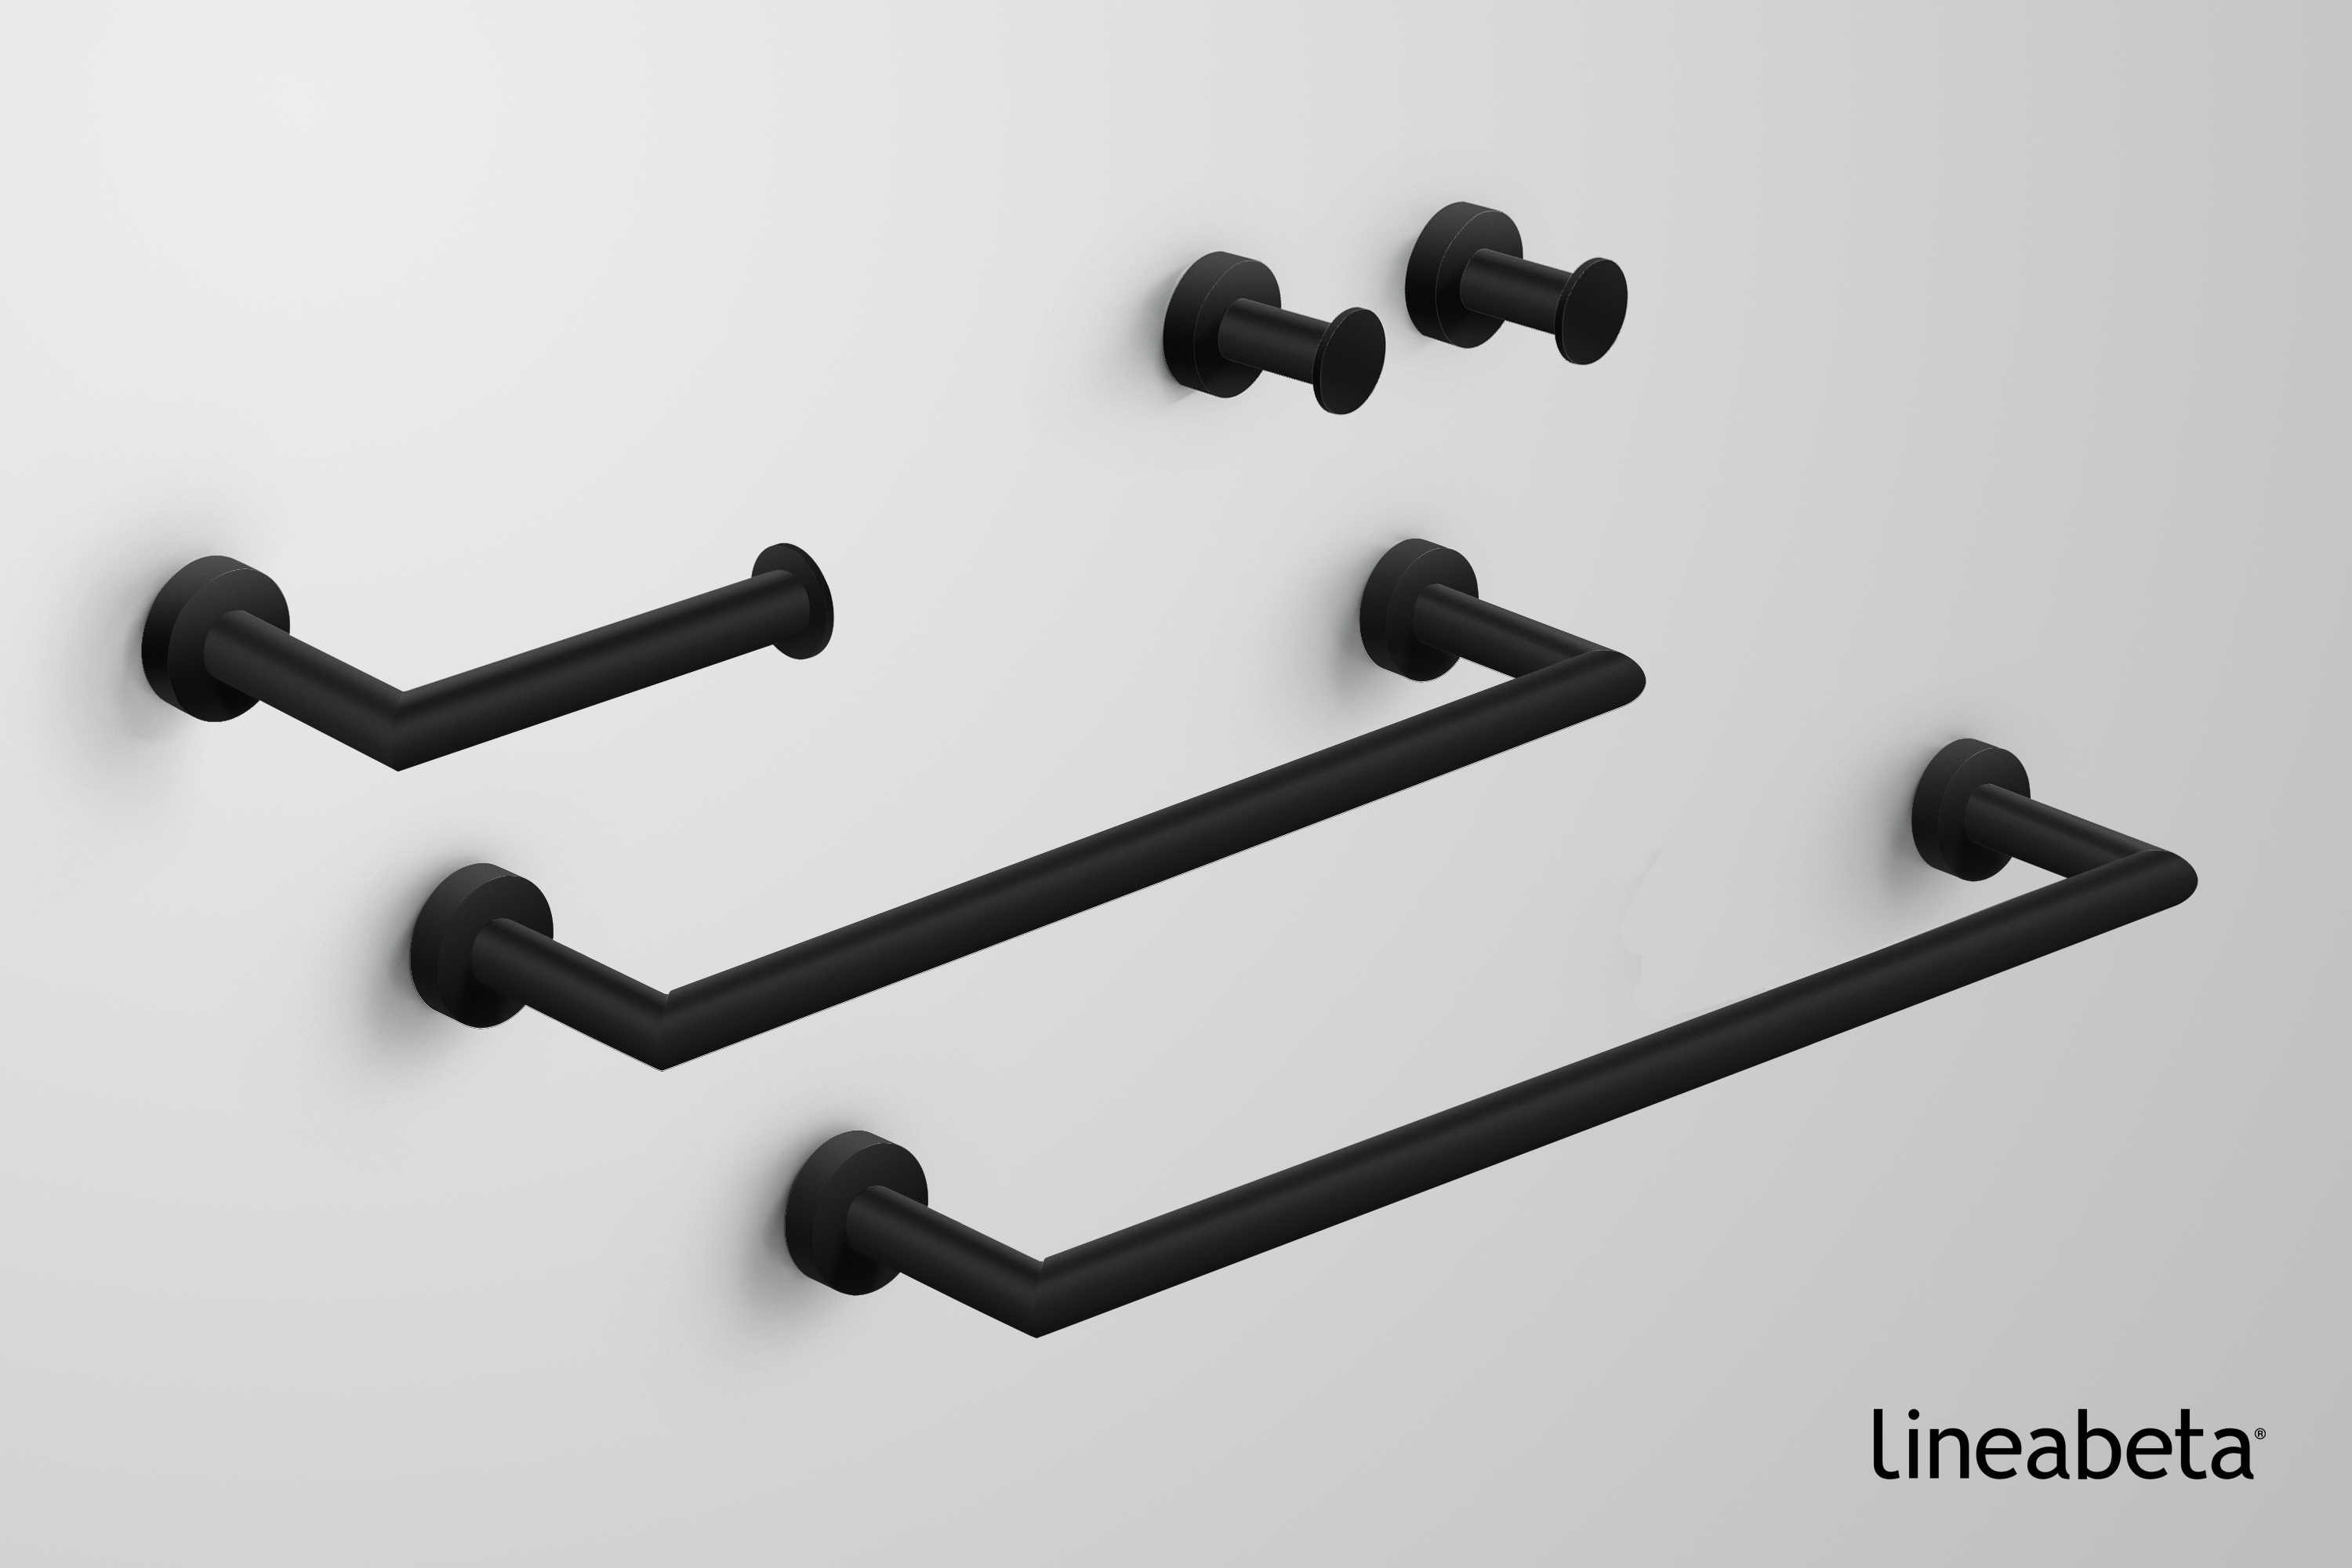 Accessori Bagno Neri baketo is the new black - bathroom accessories - lineabeta